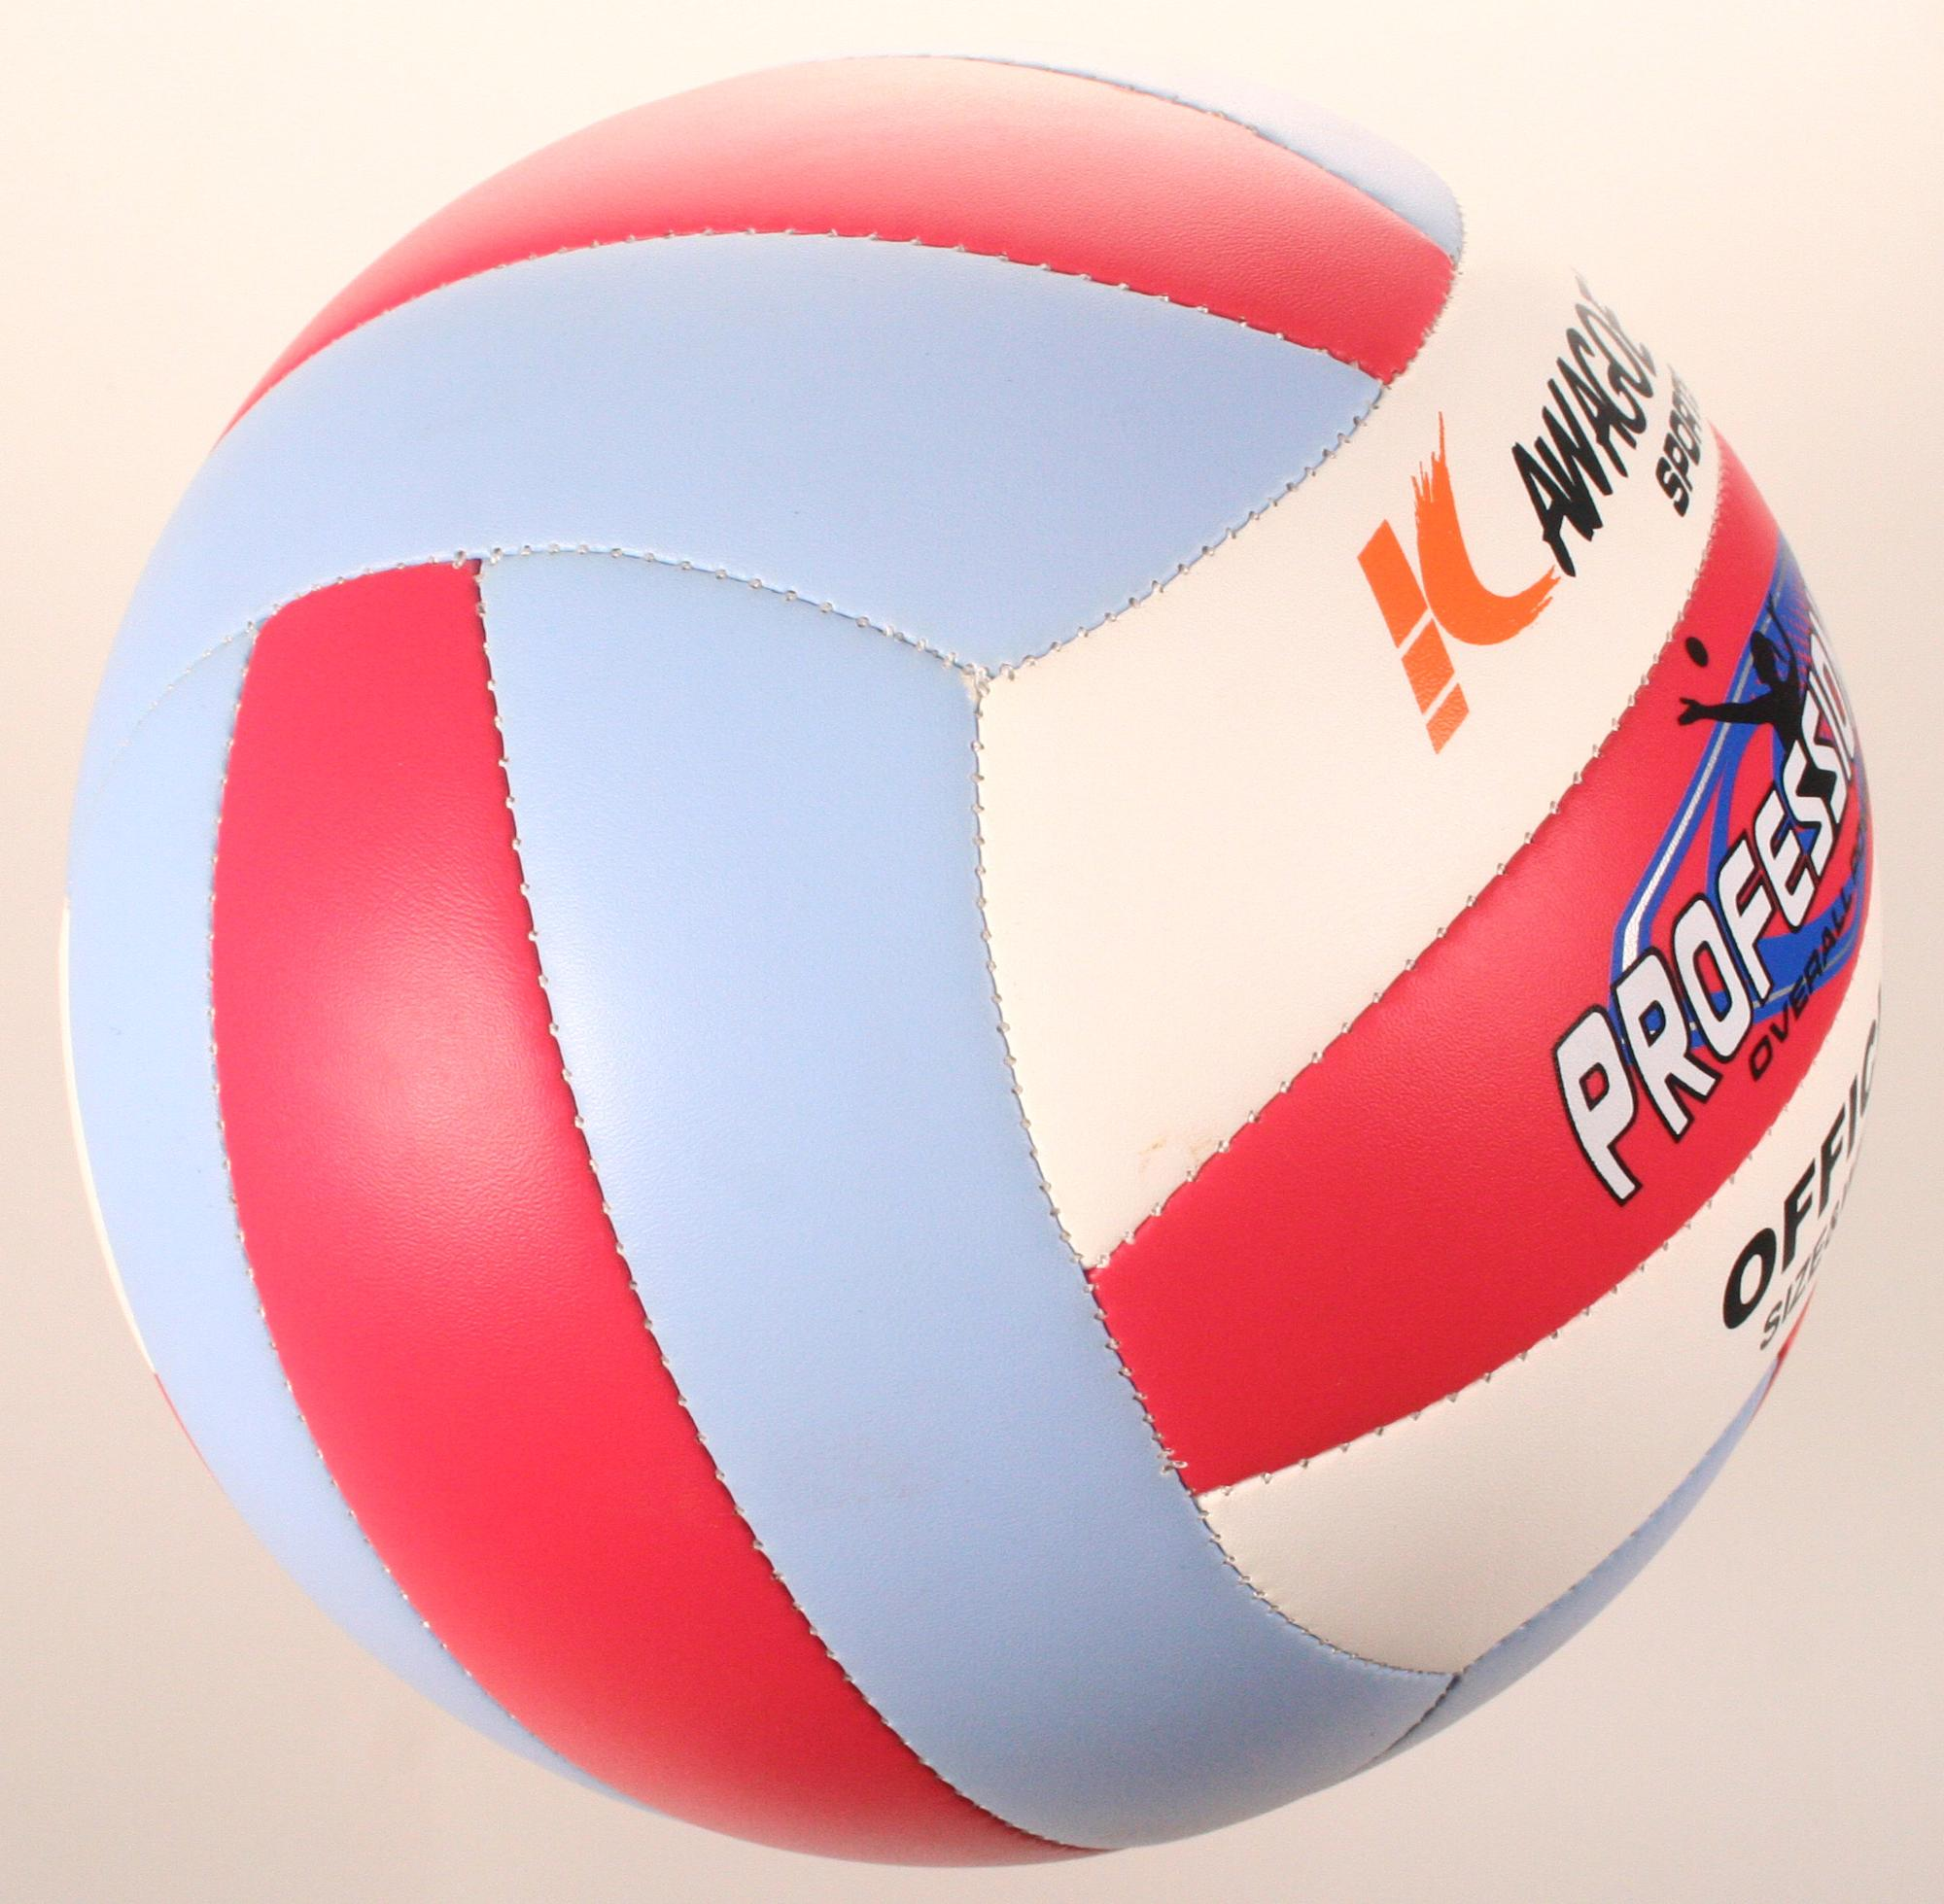 official size rubber volleyball